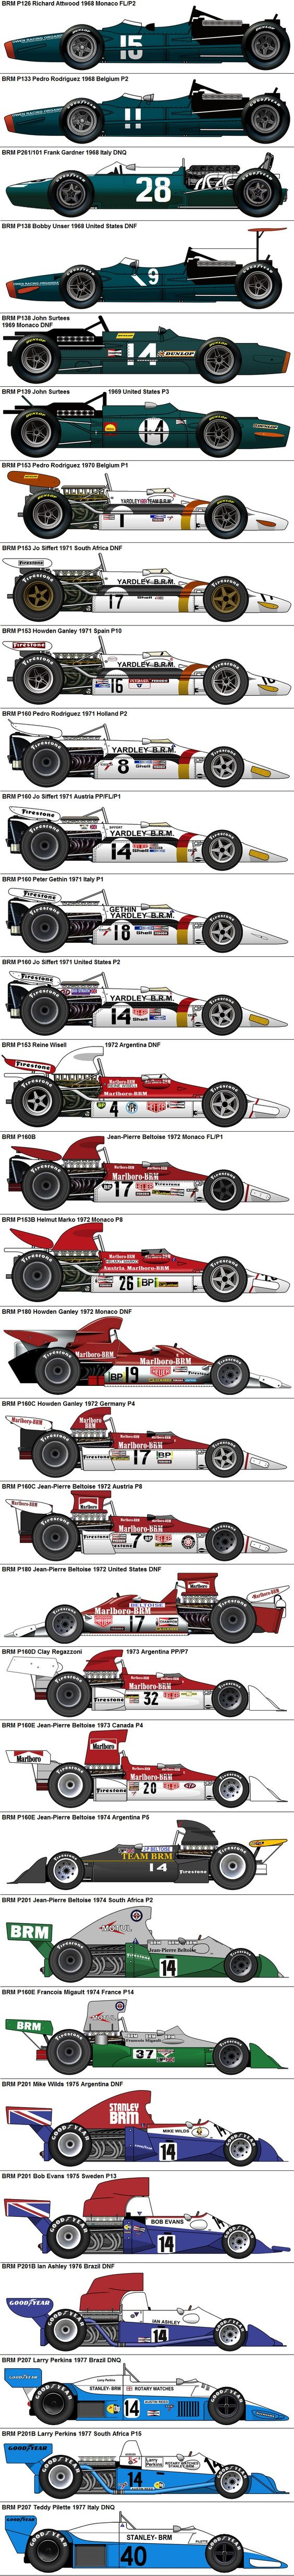 Just love this highly successful British company and what it produced. Formula 1 BRM - 1968 - 1977